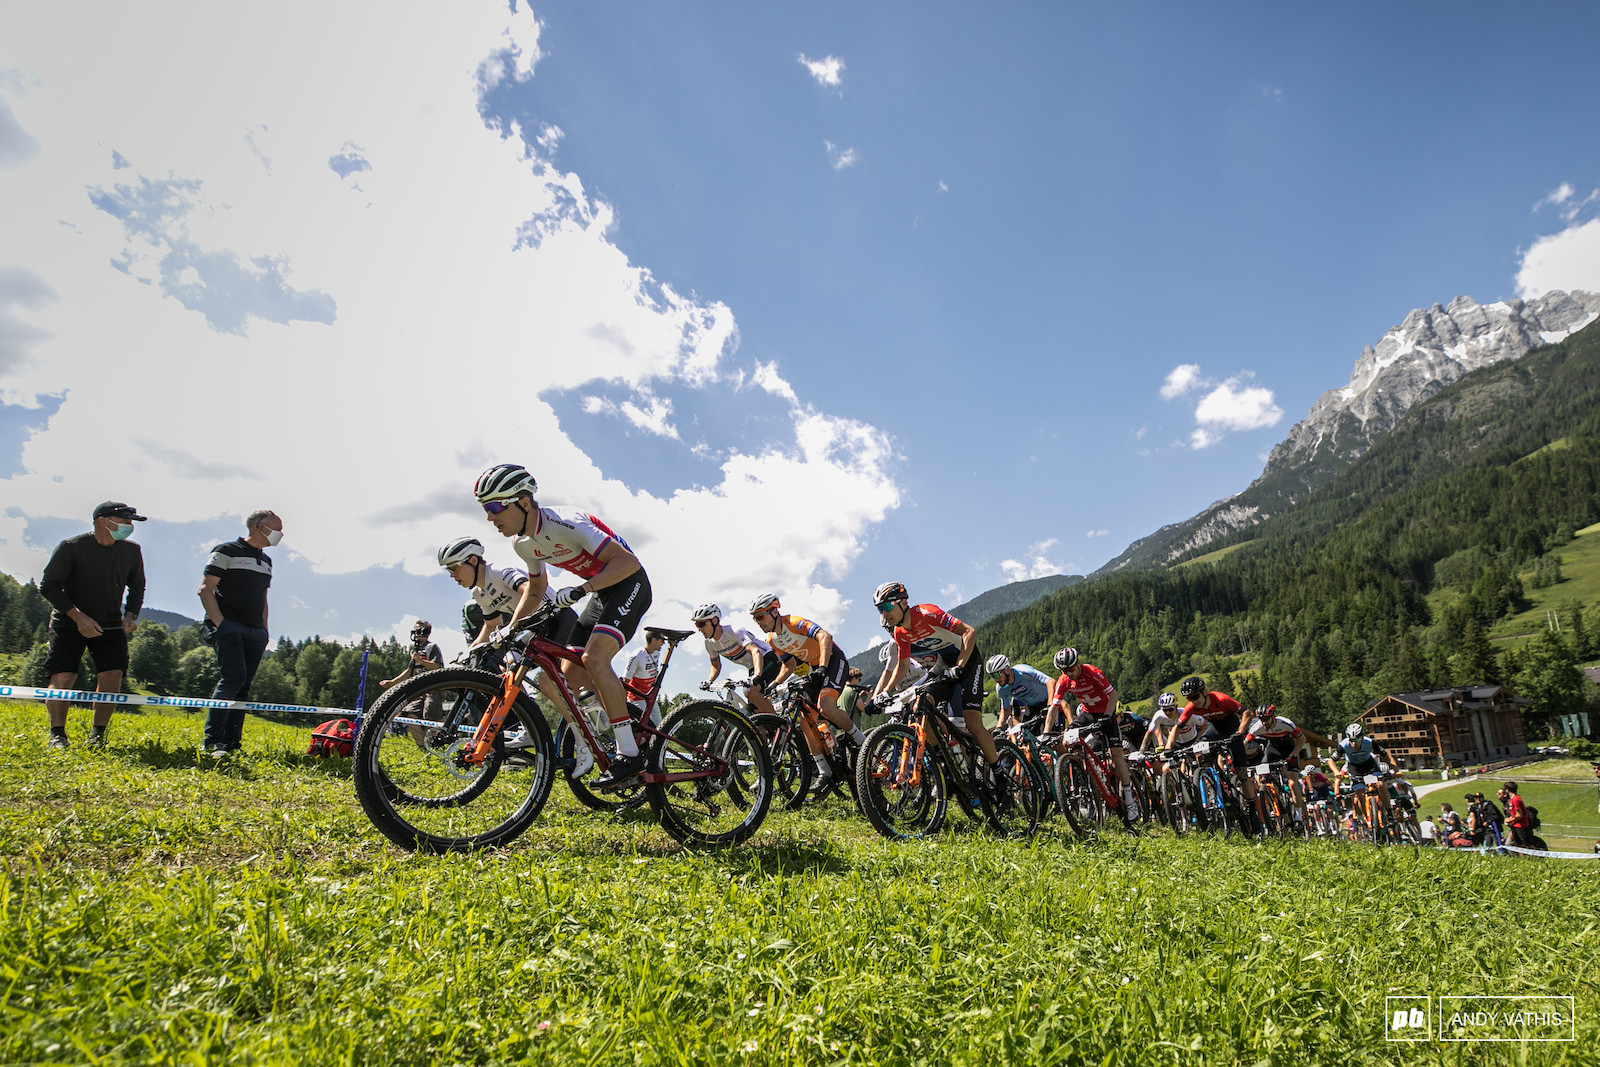 A blistering men s start included three crashes before the start look was over.